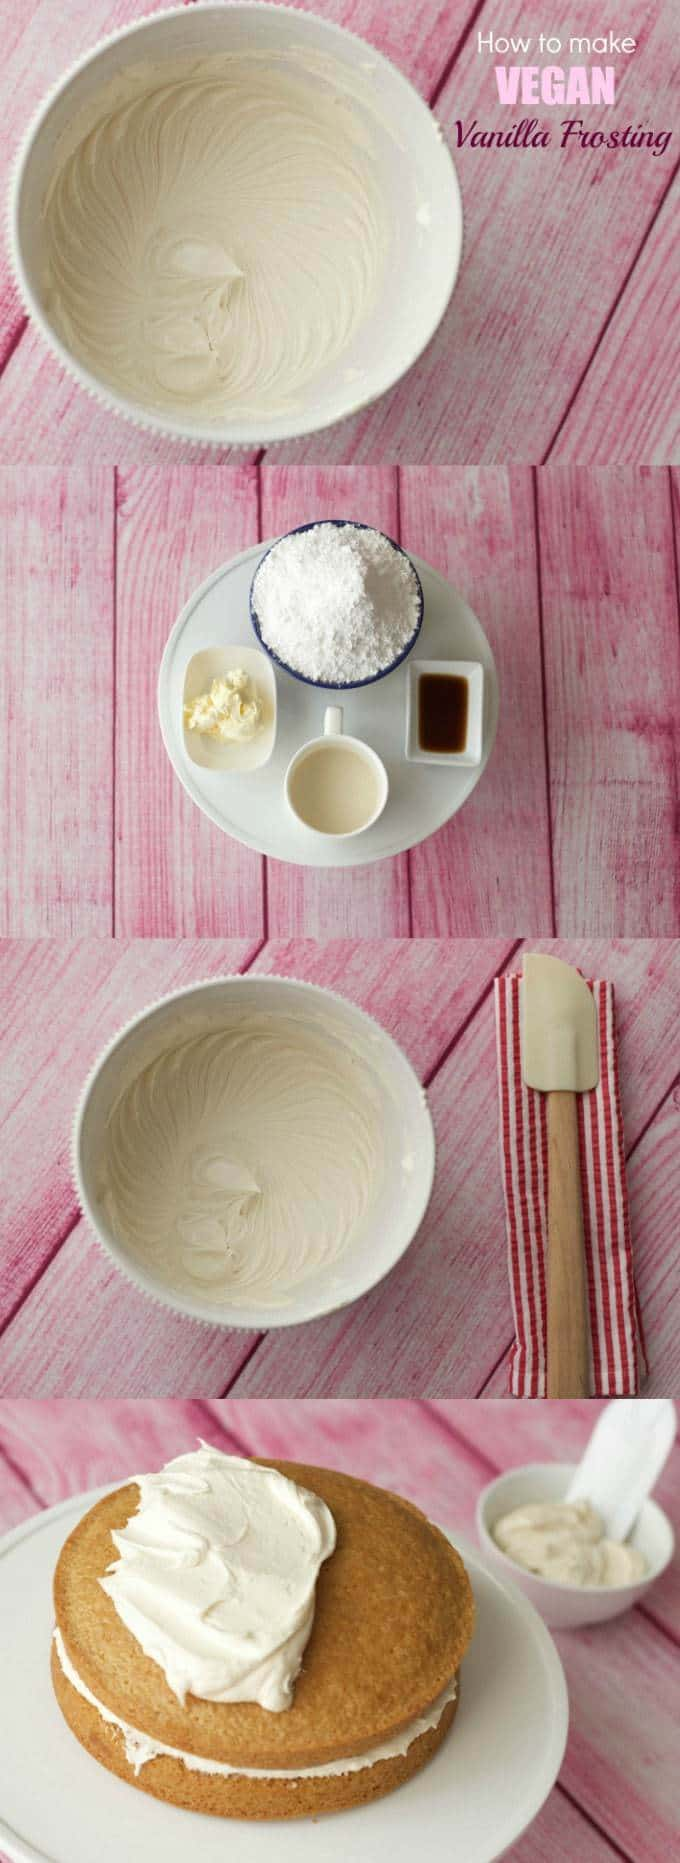 How to make Vegan Vanilla Frosting